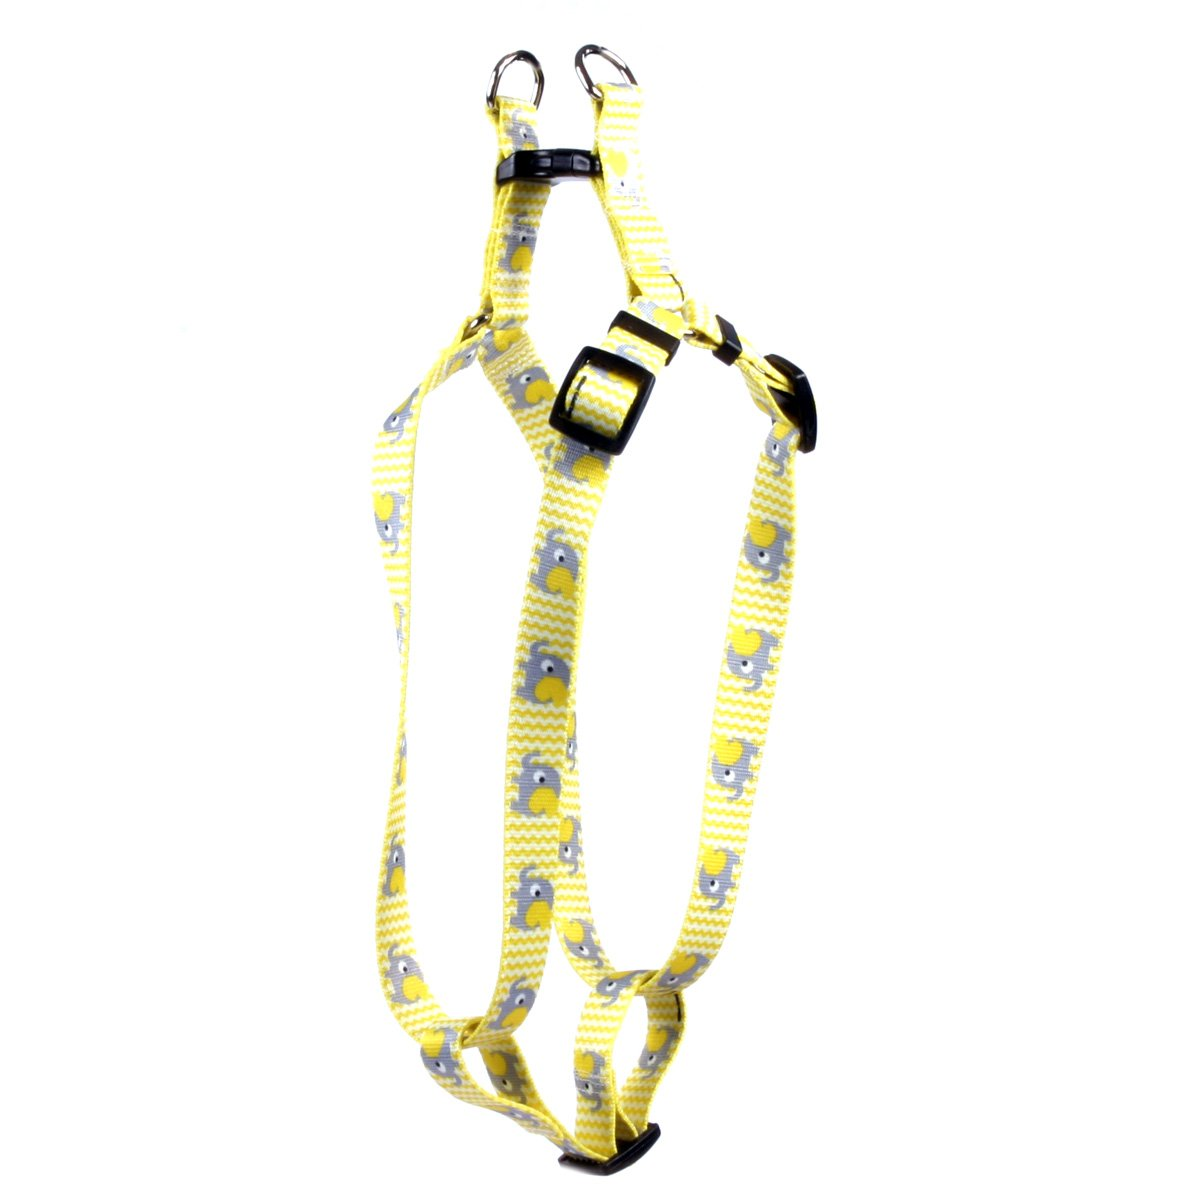 Yellow Dog Design Yellow Elephants Step-in Dog Harness-Large-1'' Wide and fits Chest Circumference of 25 to 40'' by Yellow Dog Design